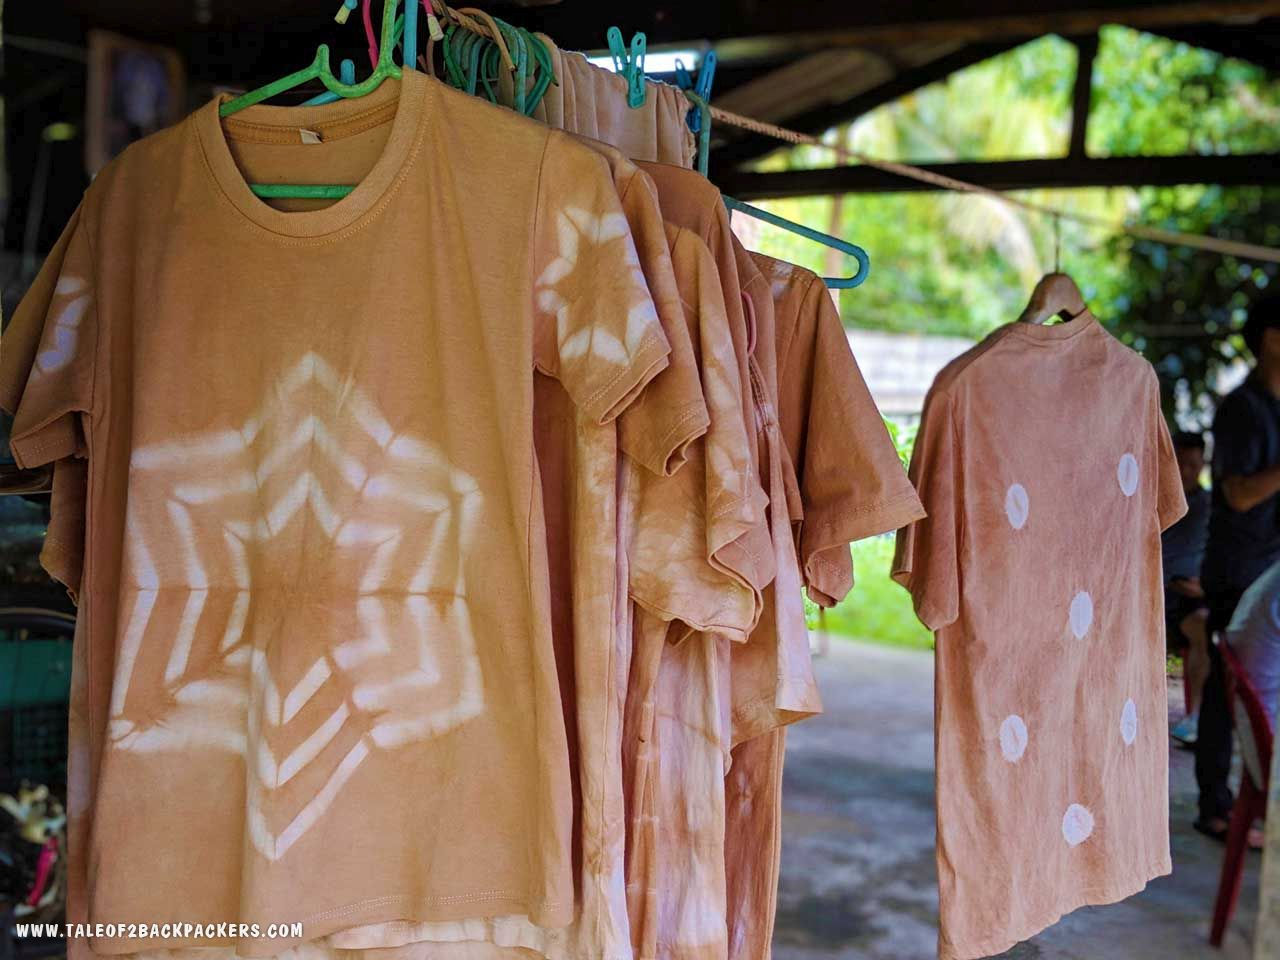 YTie-dyeing clothing at the Tha Ranae Community at Trat - offbeat places to visit in Thailand